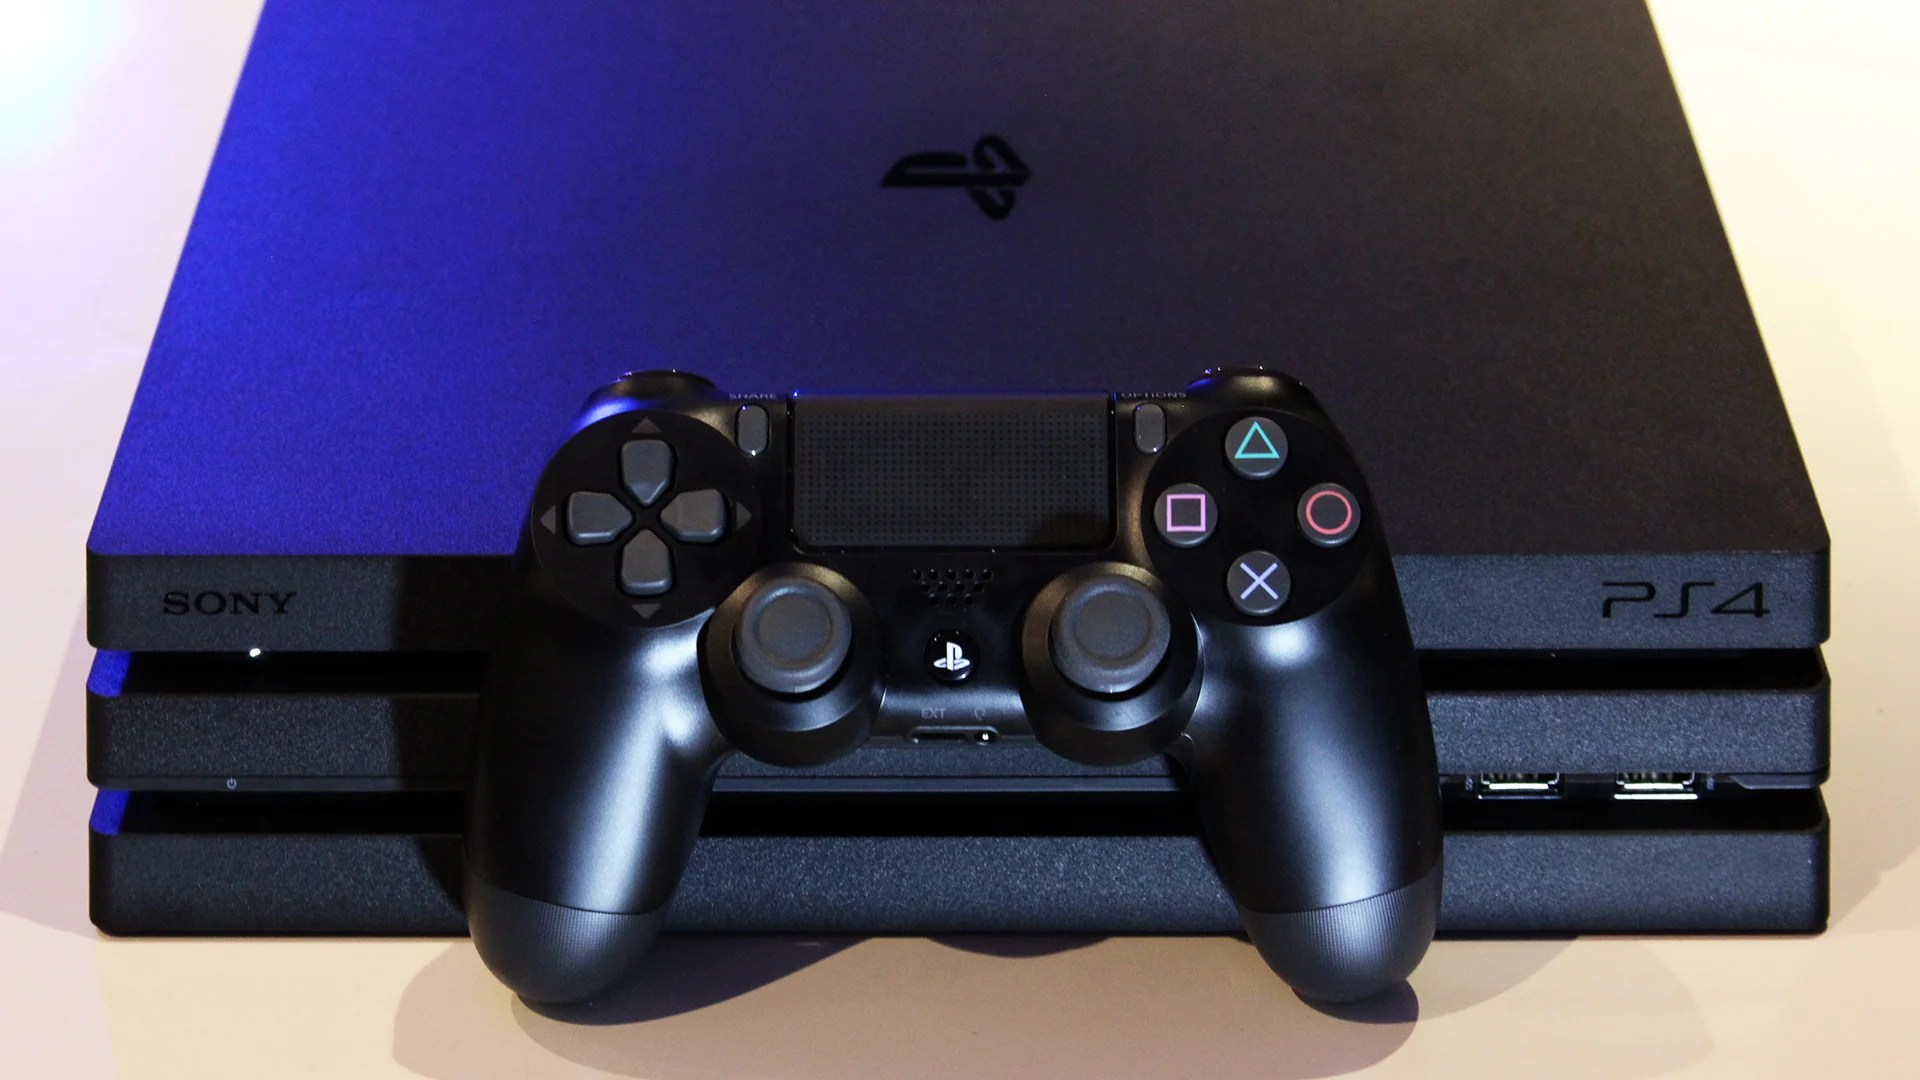 Jb Lighting Wireless Ps4 Controller Battery Life Tips And Tricks To Increase Your